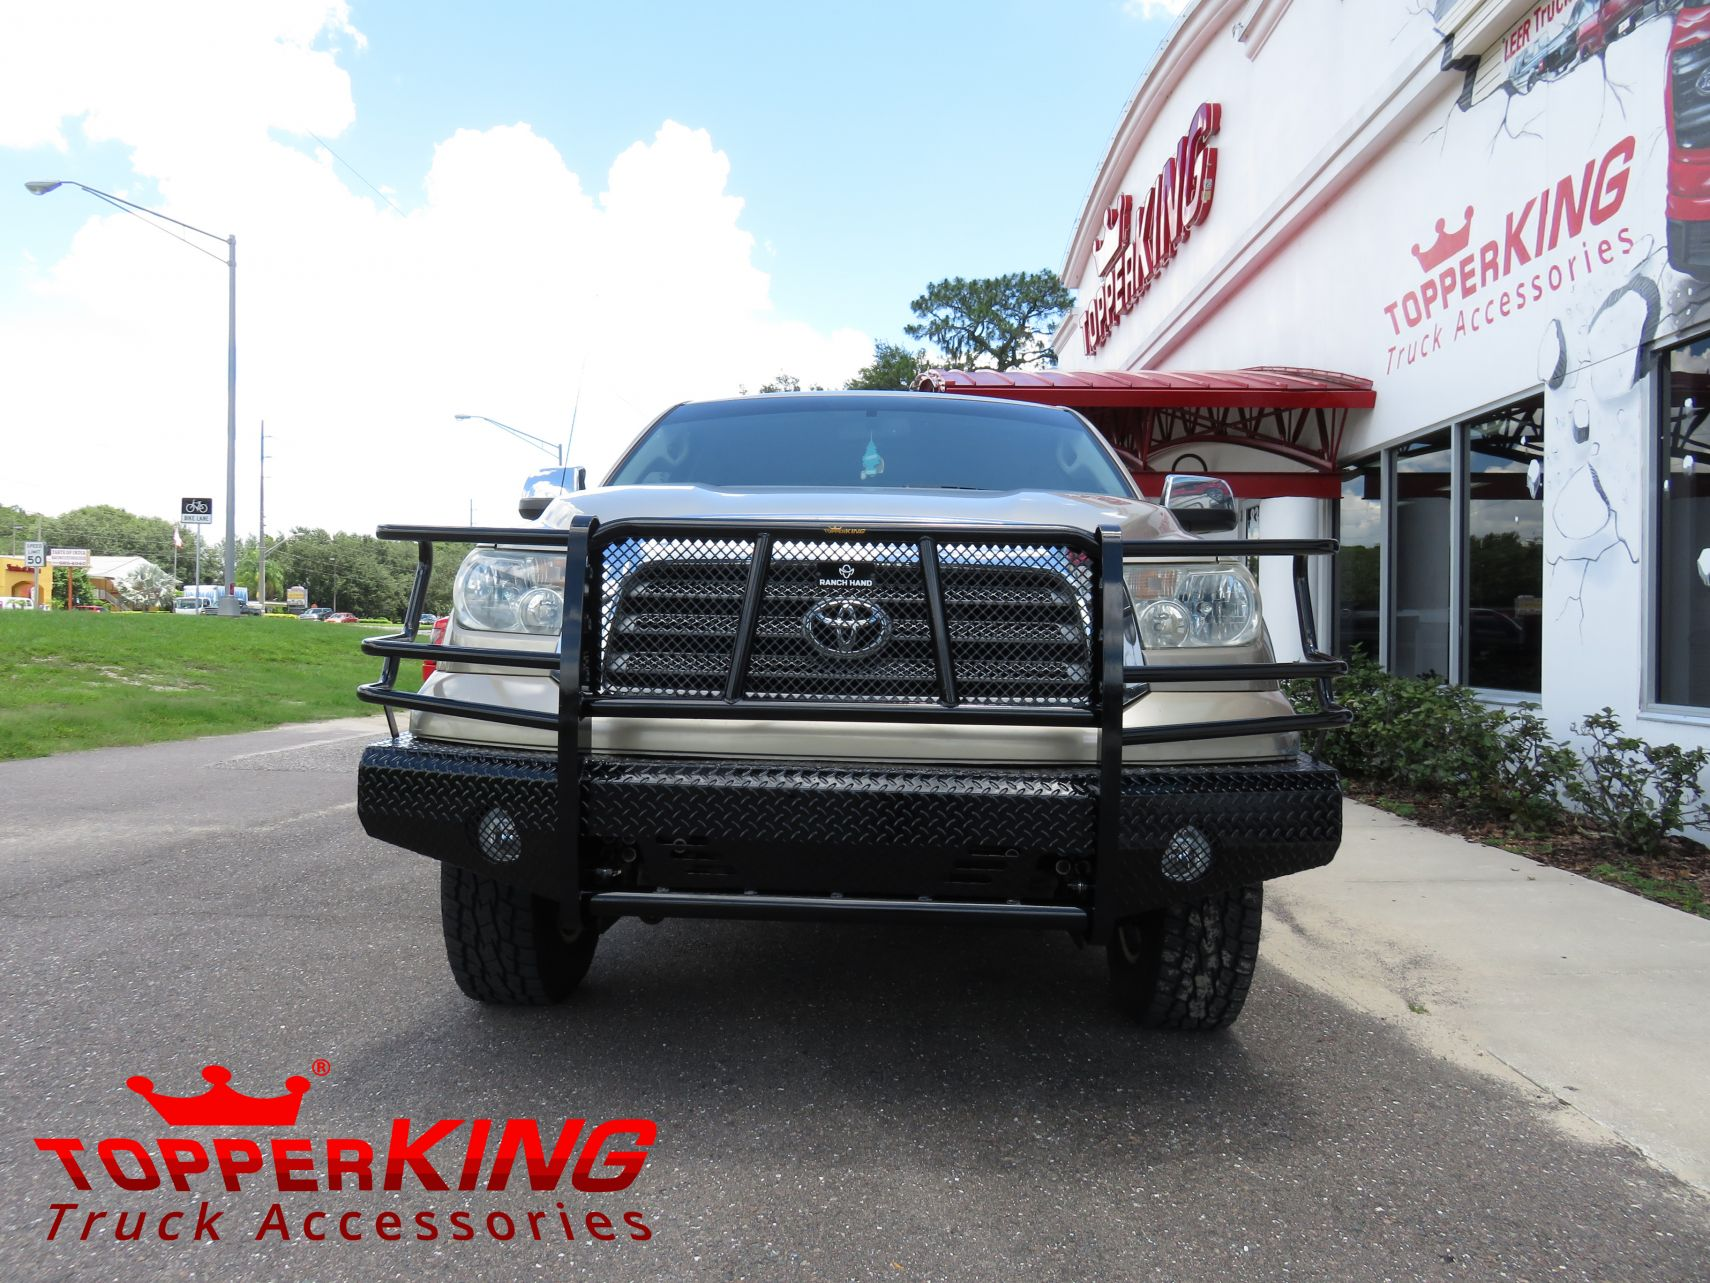 2010 toyota tundra ranchhand bumper topperking topperking providing all of tampa bay with. Black Bedroom Furniture Sets. Home Design Ideas